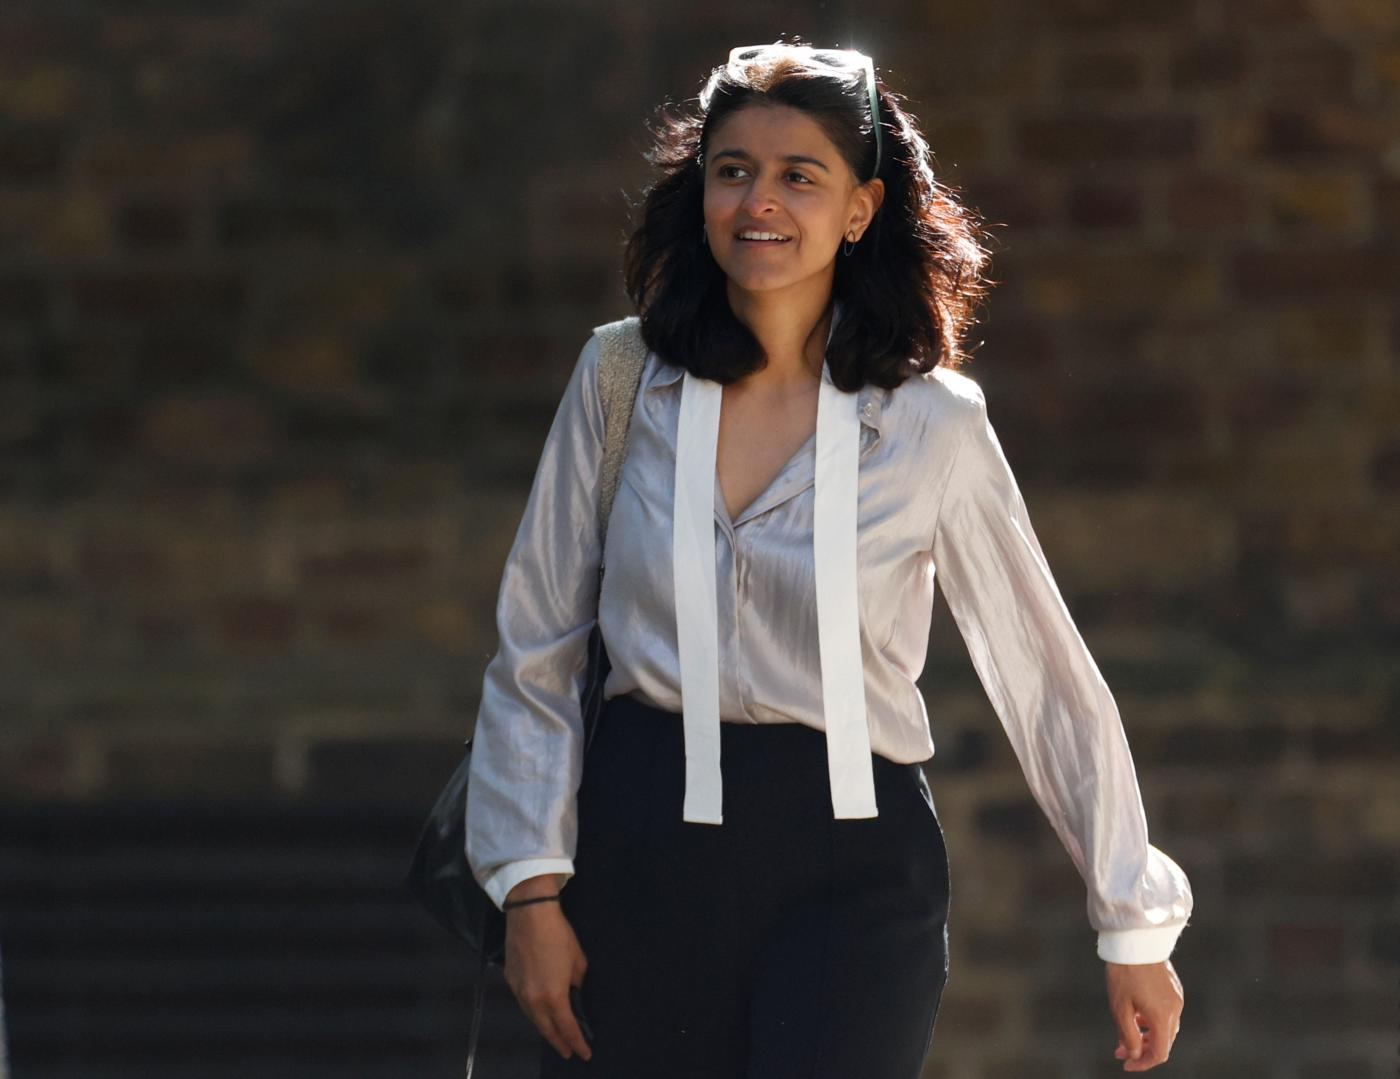 'Not Again': Academics Bemoan Munira Mirza's Appointment to Head Race Inequality Commission